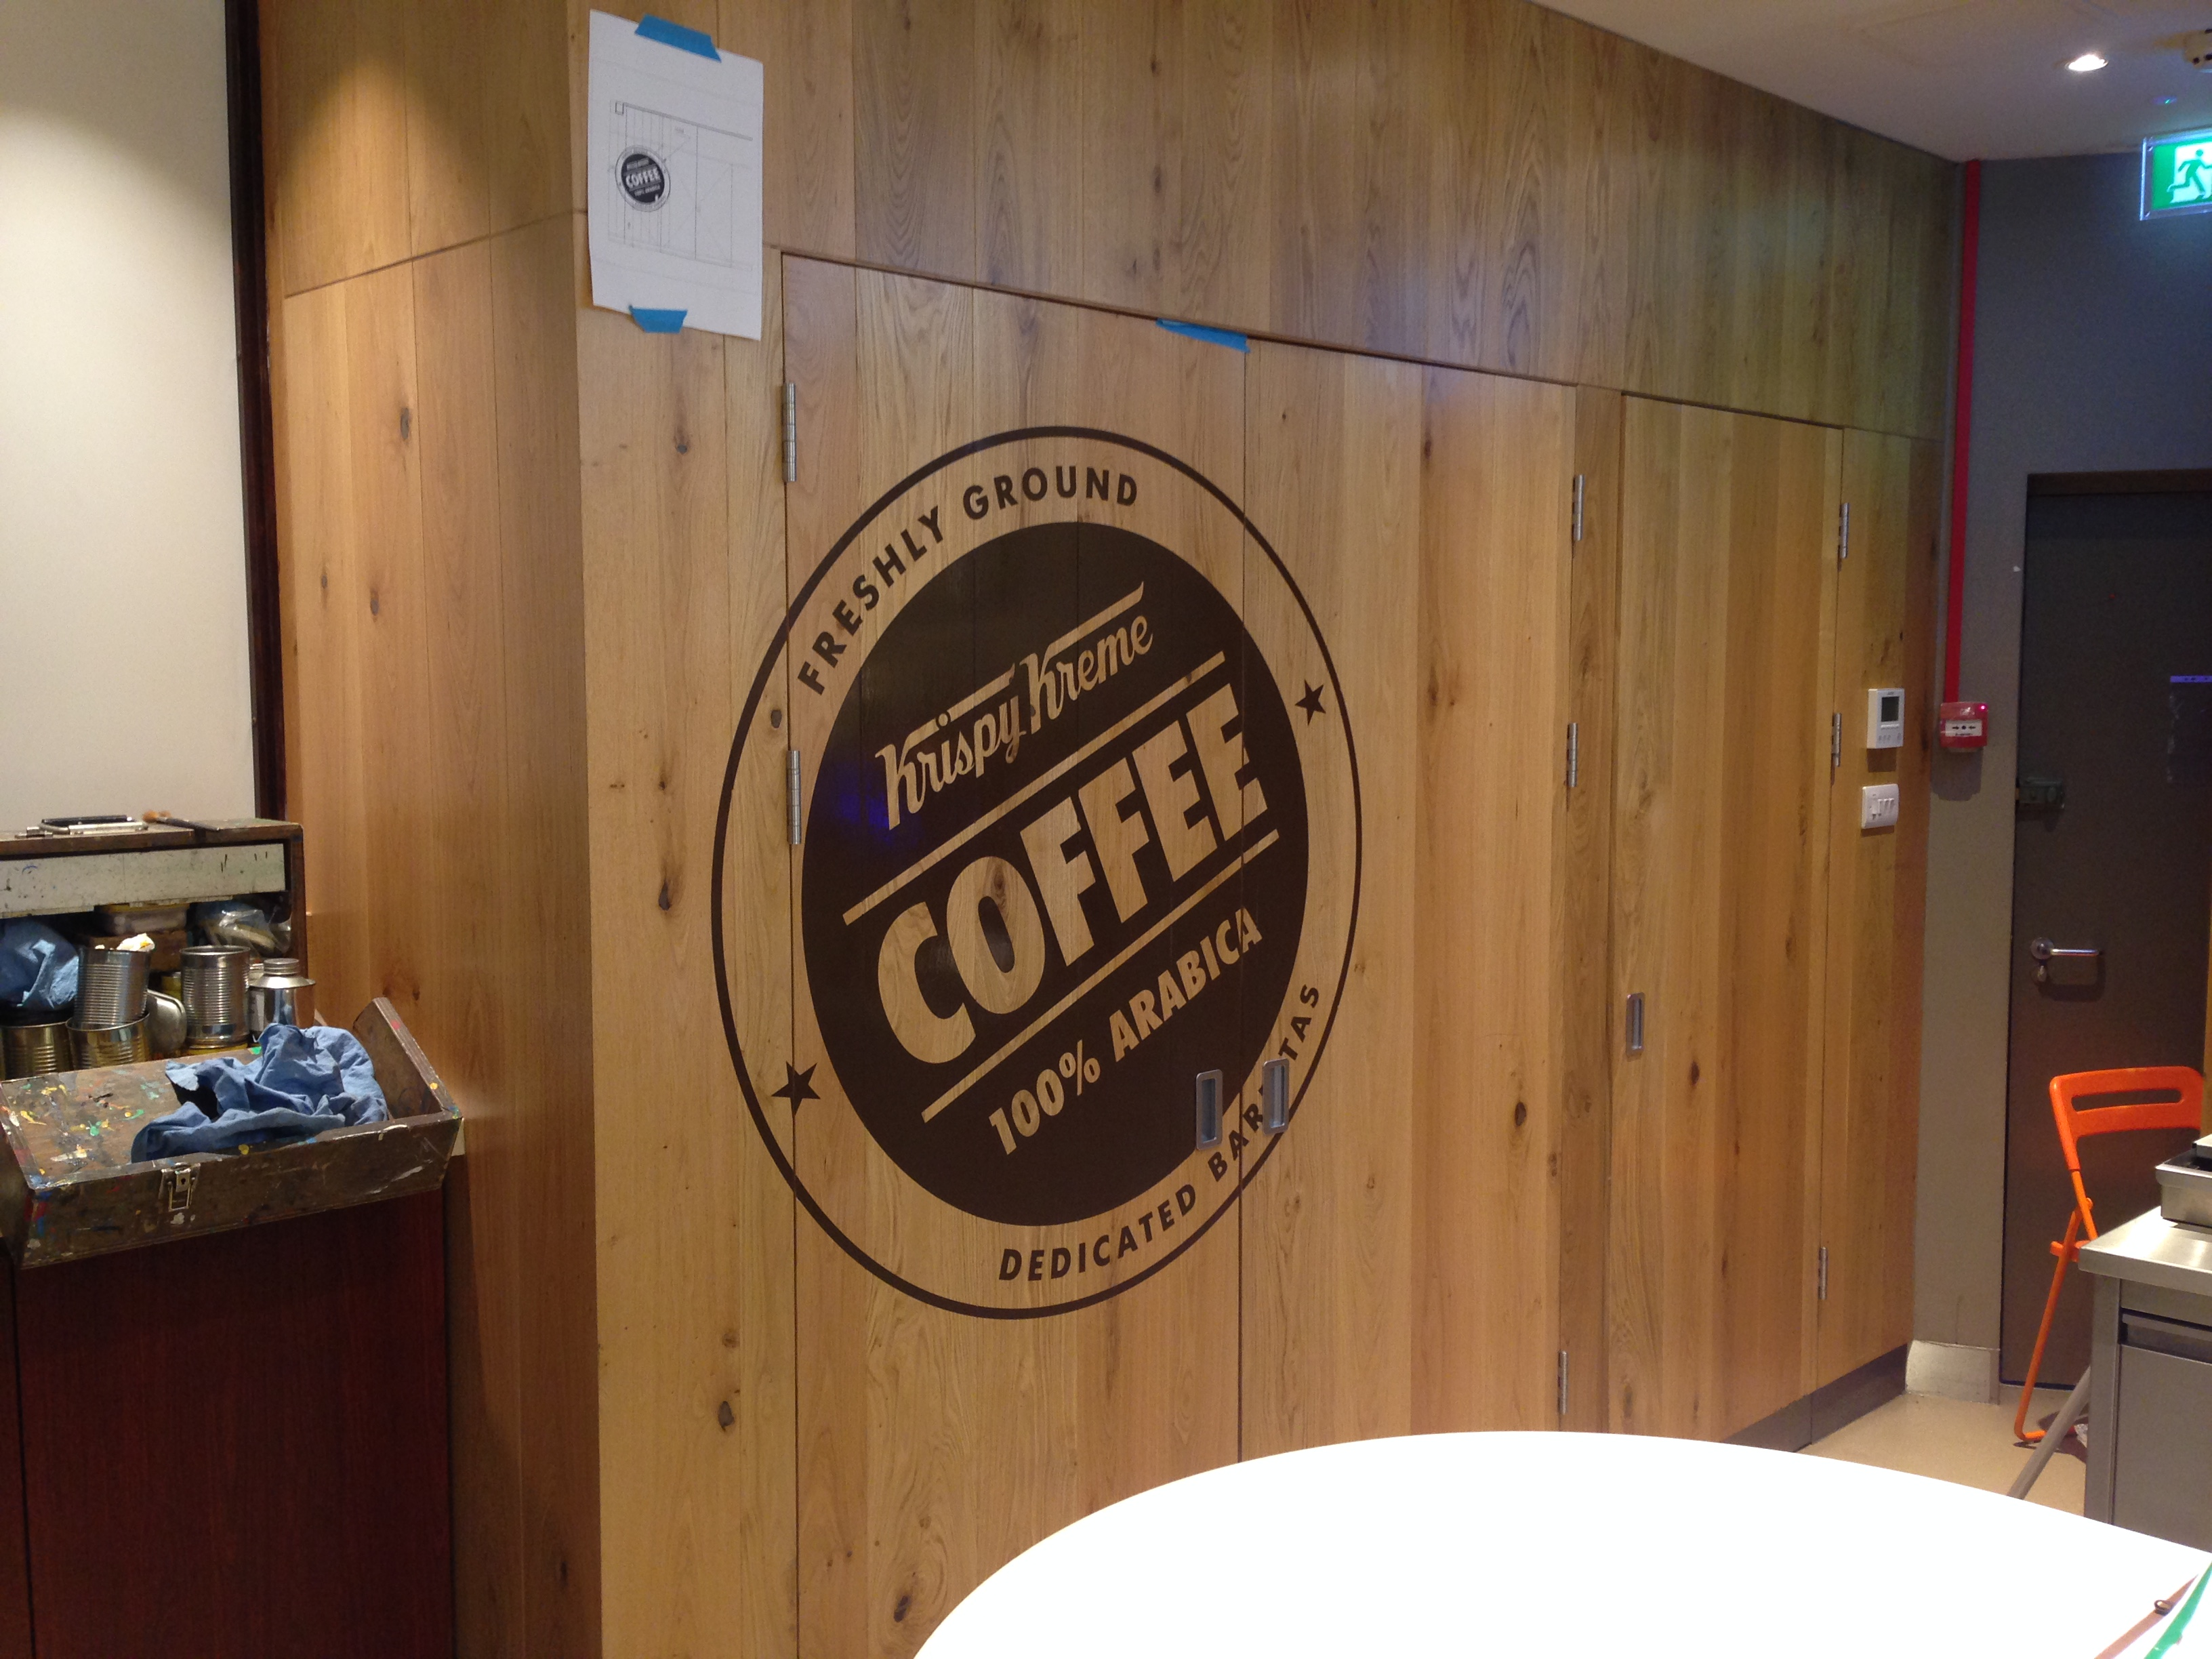 Traditional signwriting skills combined with cutting edge technology to create this painted logo in Glasgow